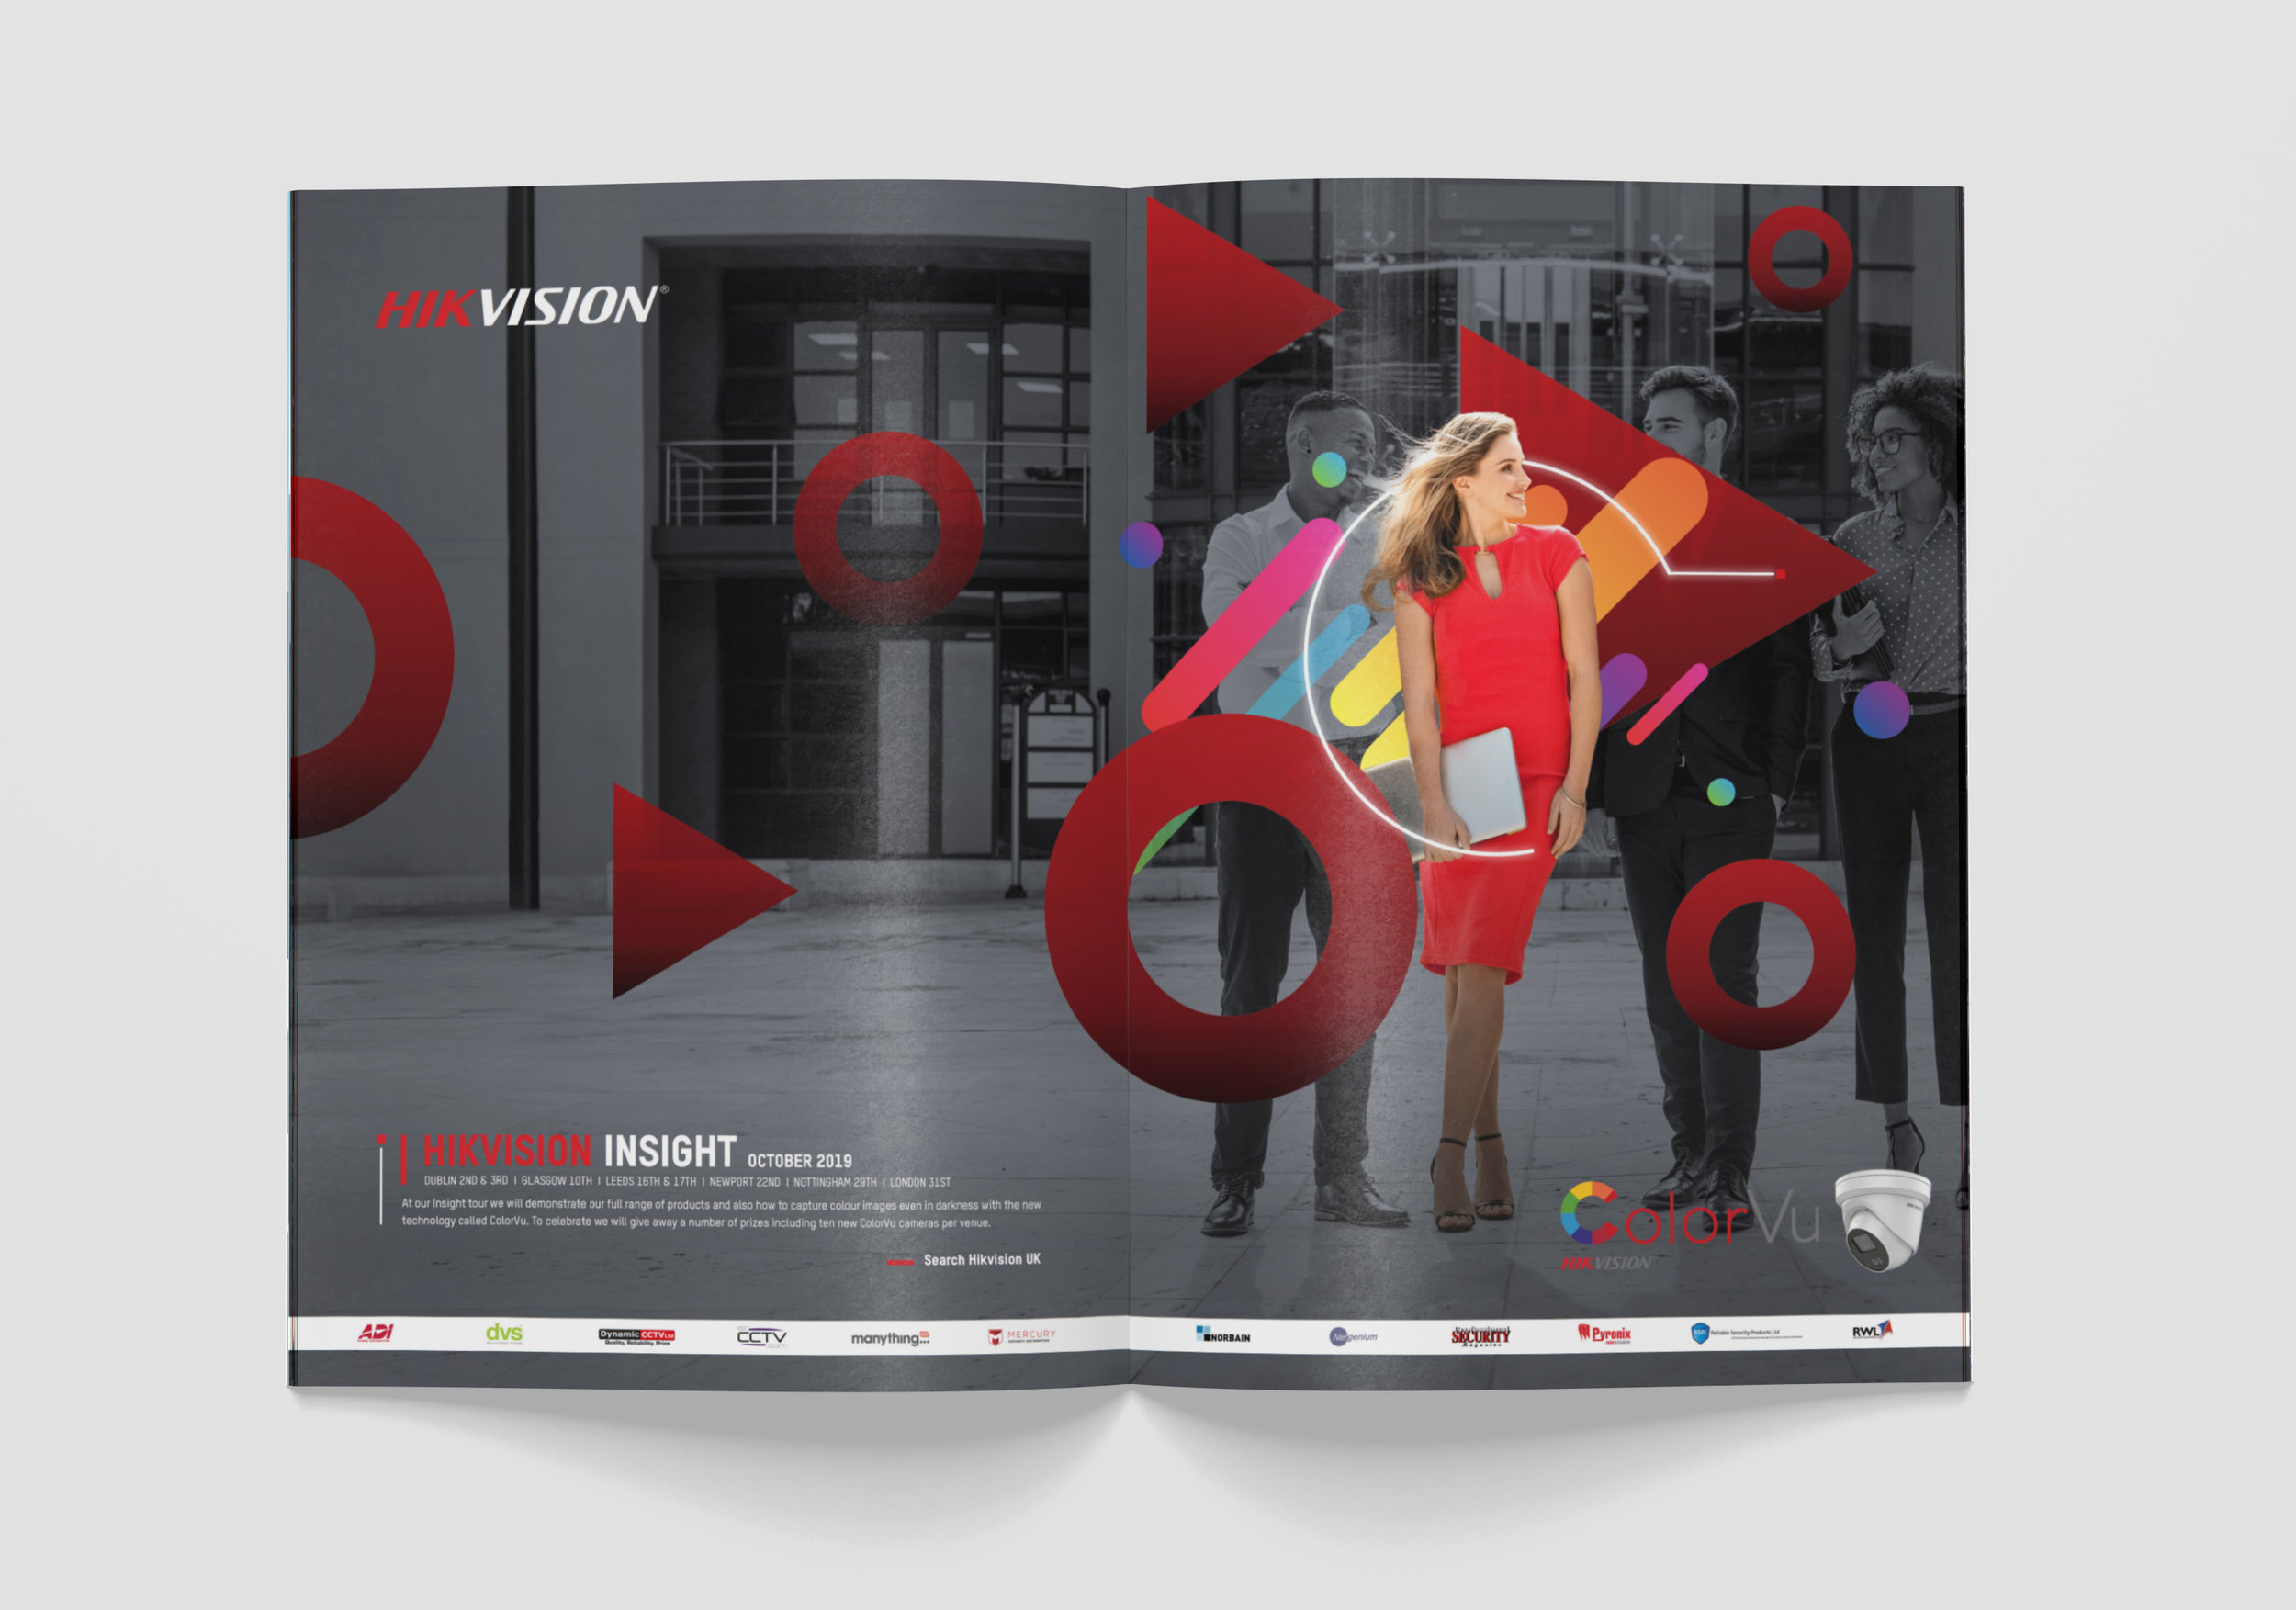 HIKVISION    - Full Visual Identity Rebrand of Hikvision UK -    Online Advertising, Print Advertising, Showroom Design, Office Artwork Design, Video Production, Motion Graphics      In the frame: Insight Roadshow Event/Software Feature Promotion Artwork -  A4 Double Spread Print Advertising   Further Materials from this Roadshow design concept: Demonstration Videos, Promo Video, Invite Video, Roll Up Banners, Event Stand Graphics, A4 Print, Web Banners, Wall Artwork, Email Signature